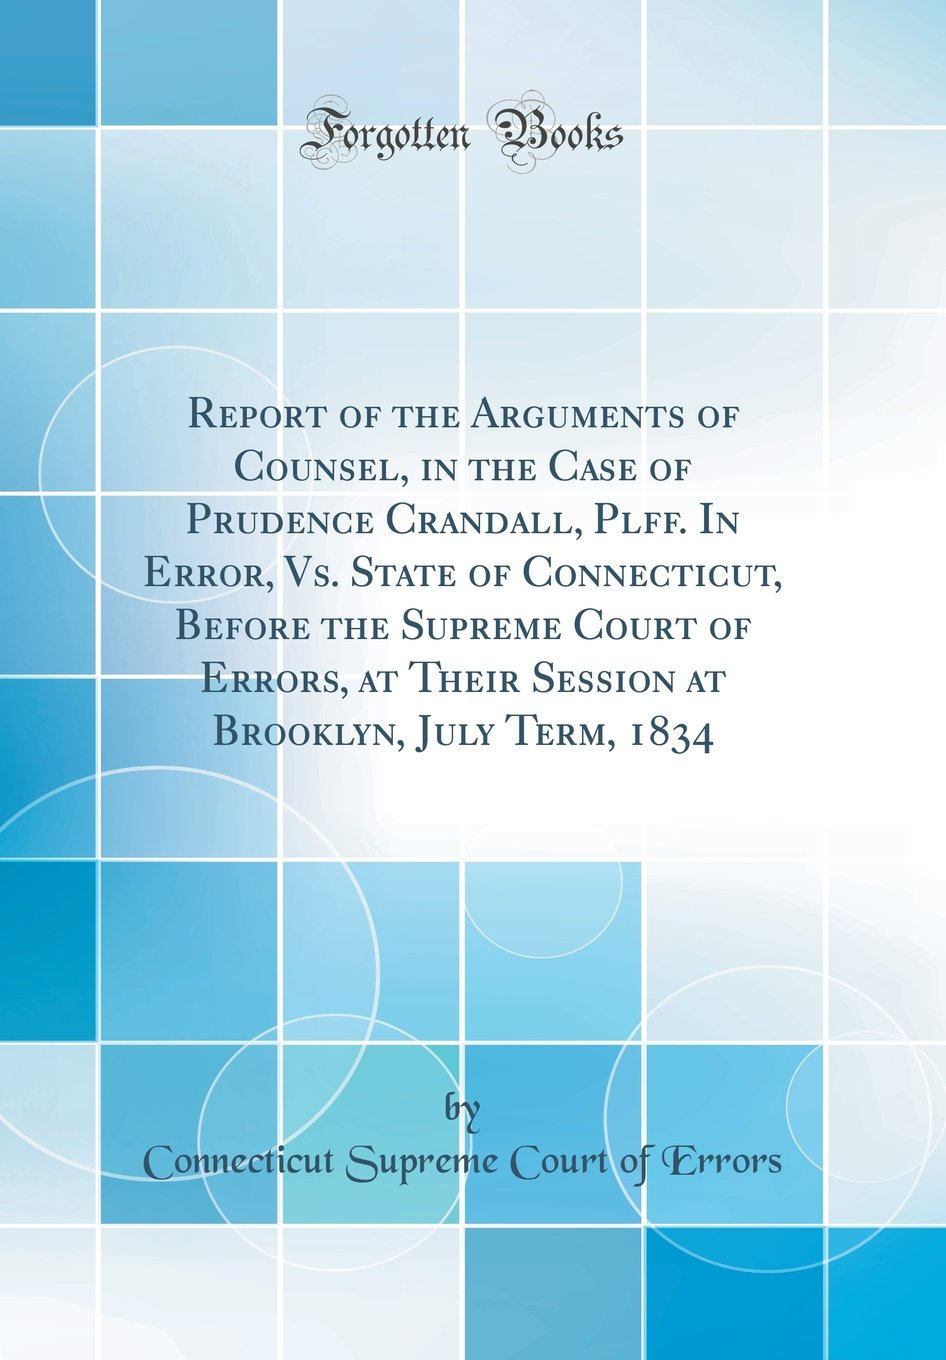 Read Online Report of the Arguments of Counsel, in the Case of Prudence Crandall, Plff. in Error, vs. State of Connecticut, Before the Supreme Court of Errors, at ... Brooklyn, July Term, 1834 (Classic Reprint) pdf epub